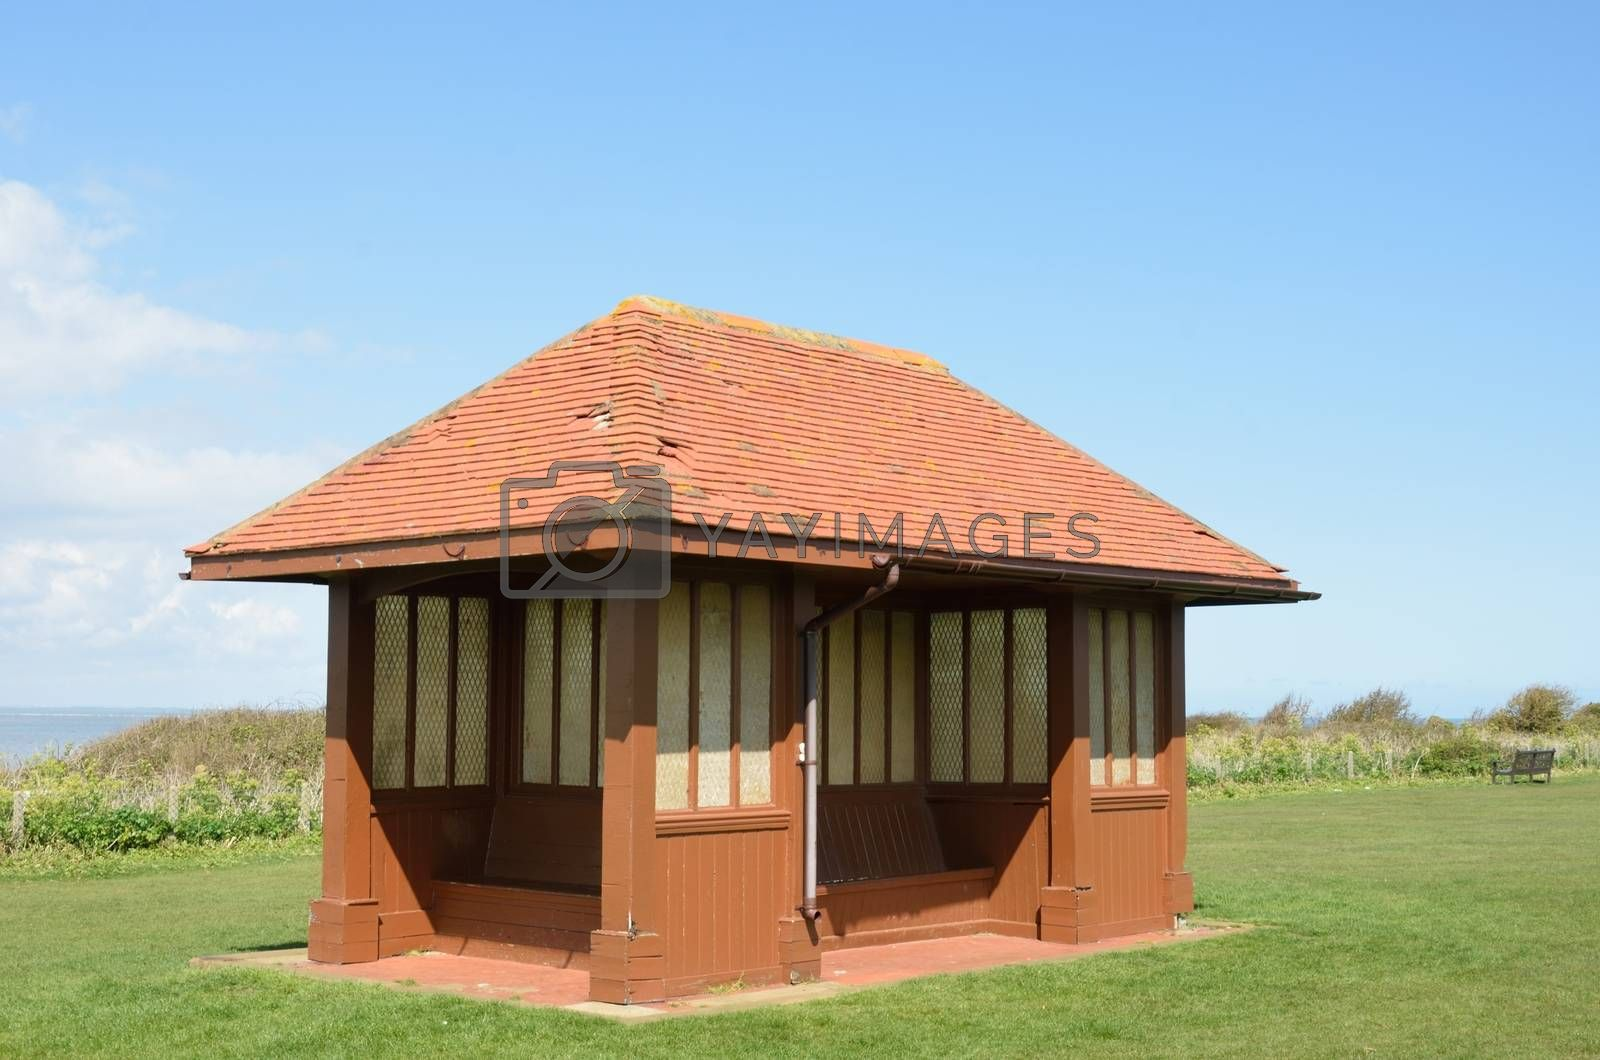 Seaside Shelter in England